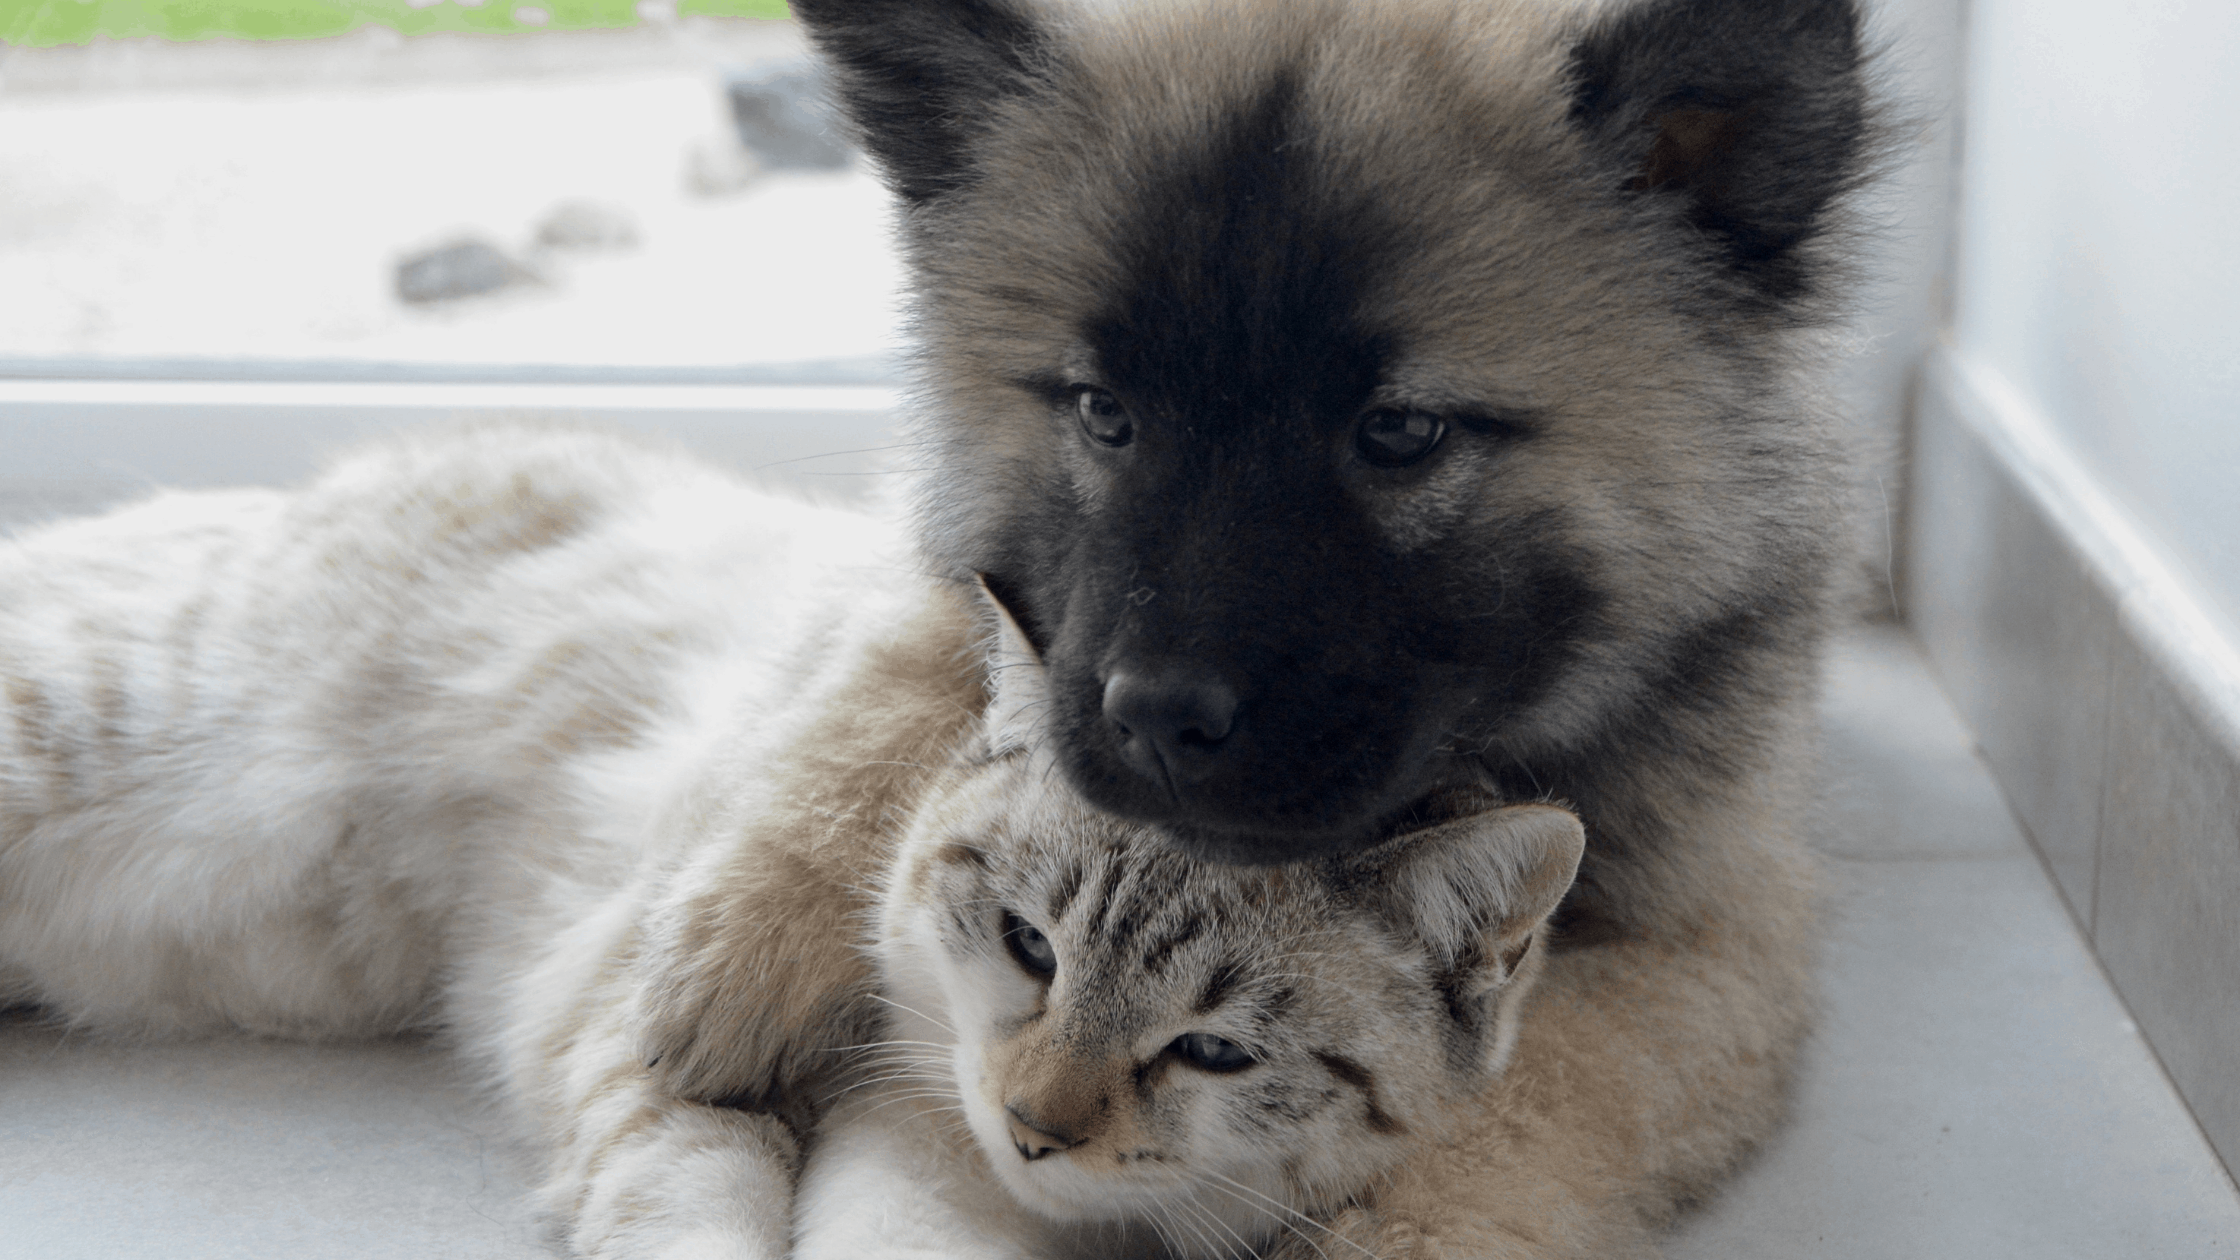 Fluffy brown and black puppy resting his head on top of a gray and white cat while snuggling together.